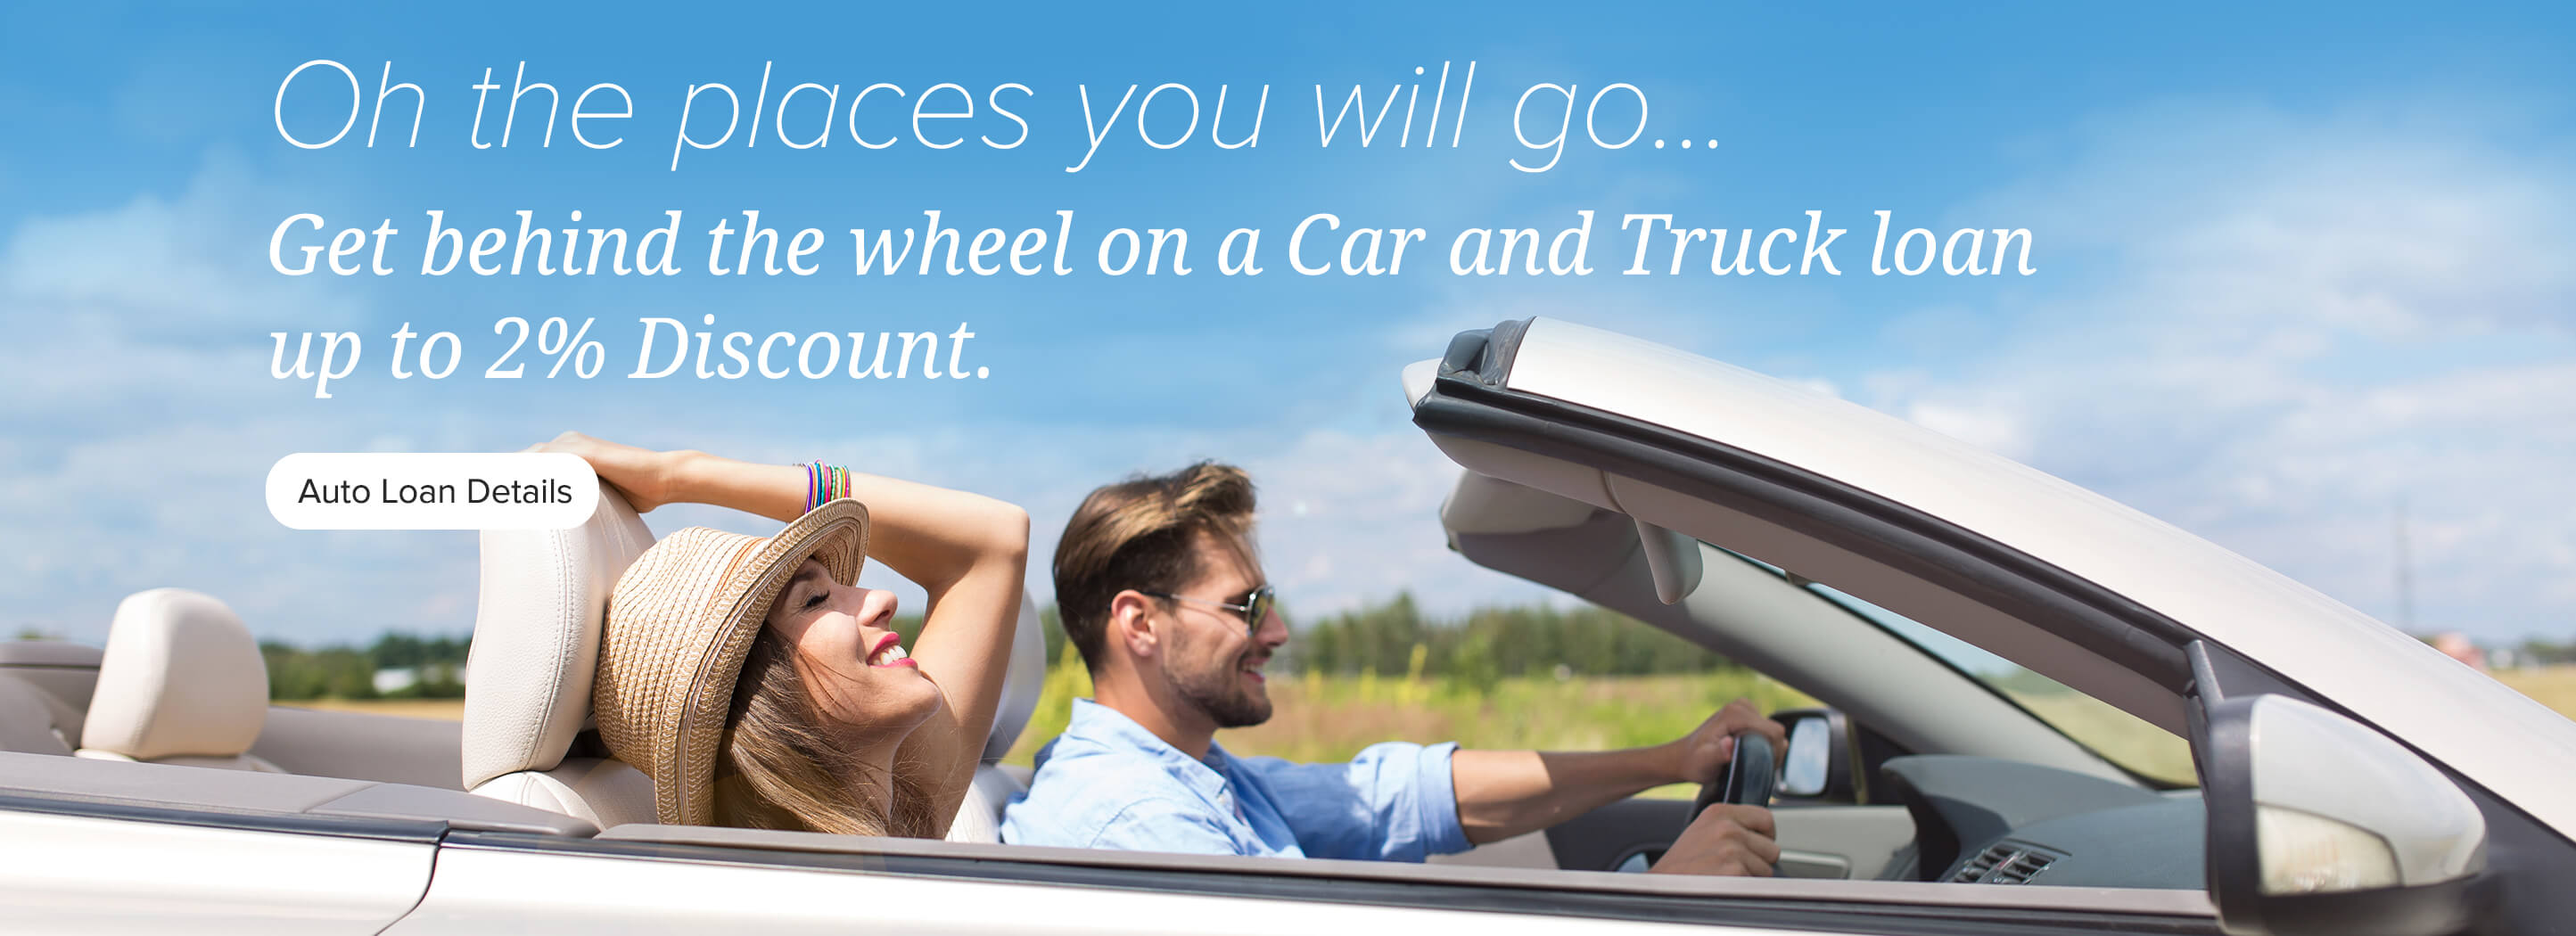 Oh the places you will go... Get behind the wheel on a Car & Truck loan up to 2% discount. Auto Loan Details.